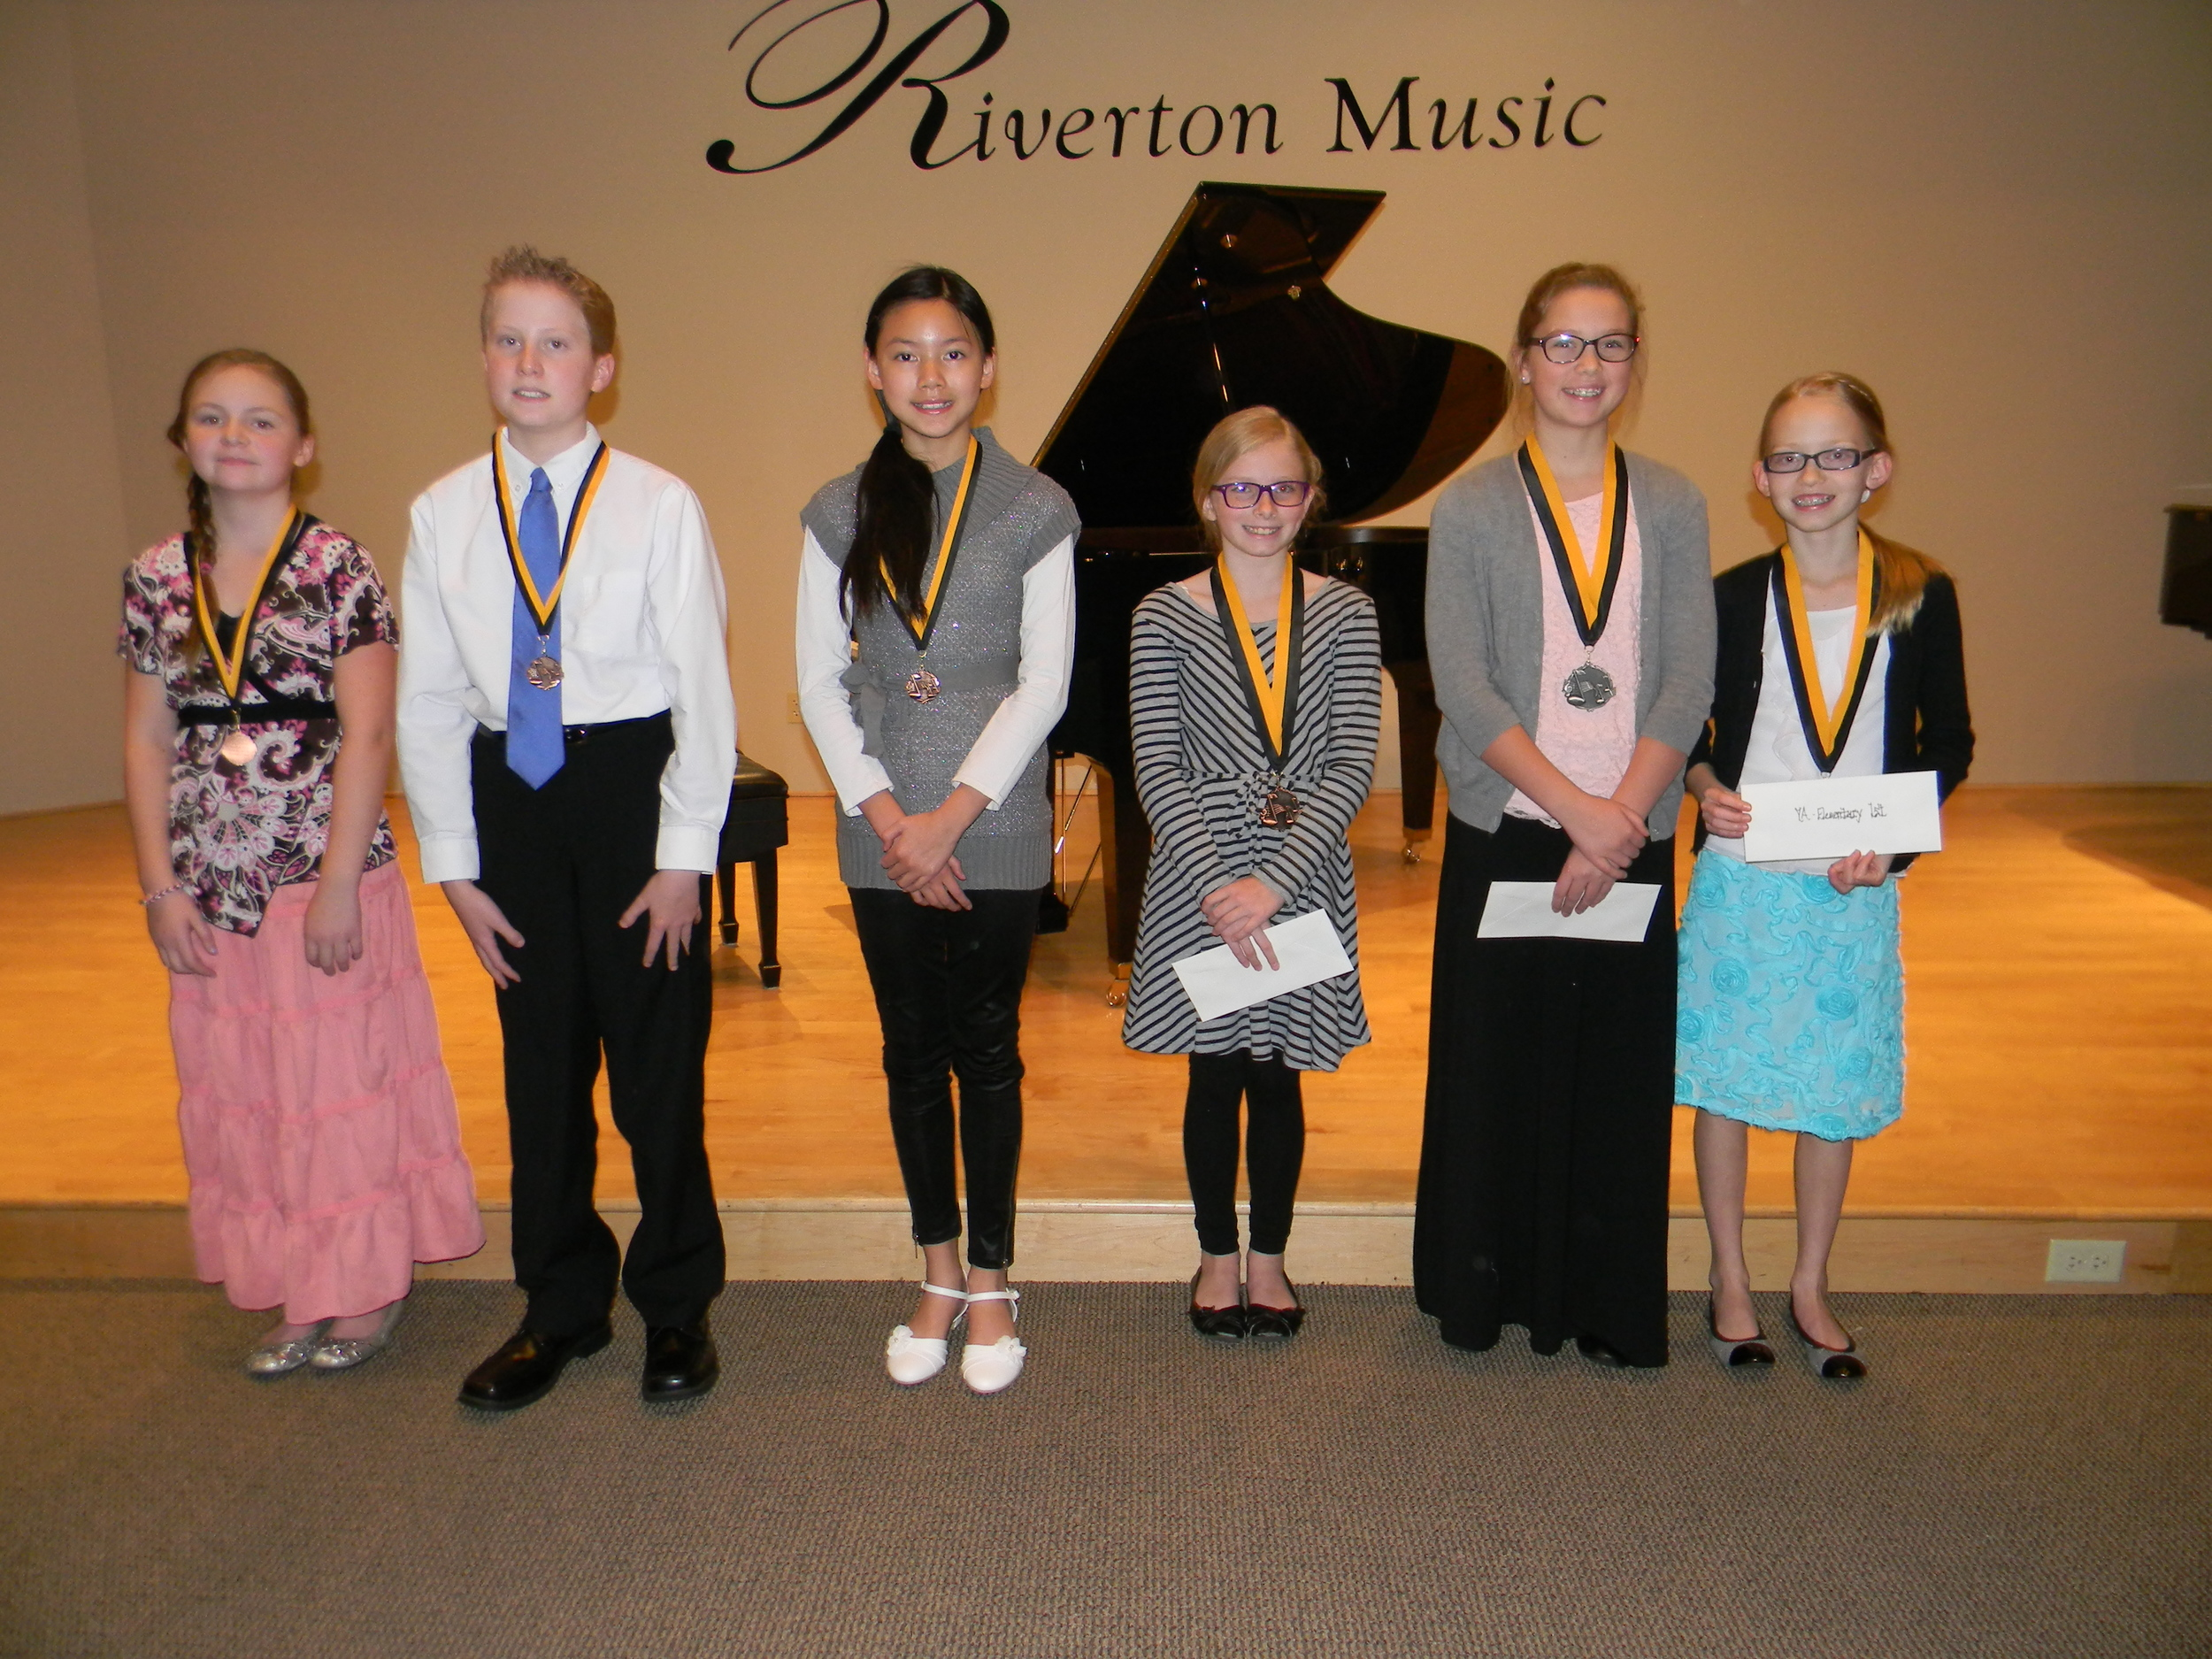 Some of our student festival winners